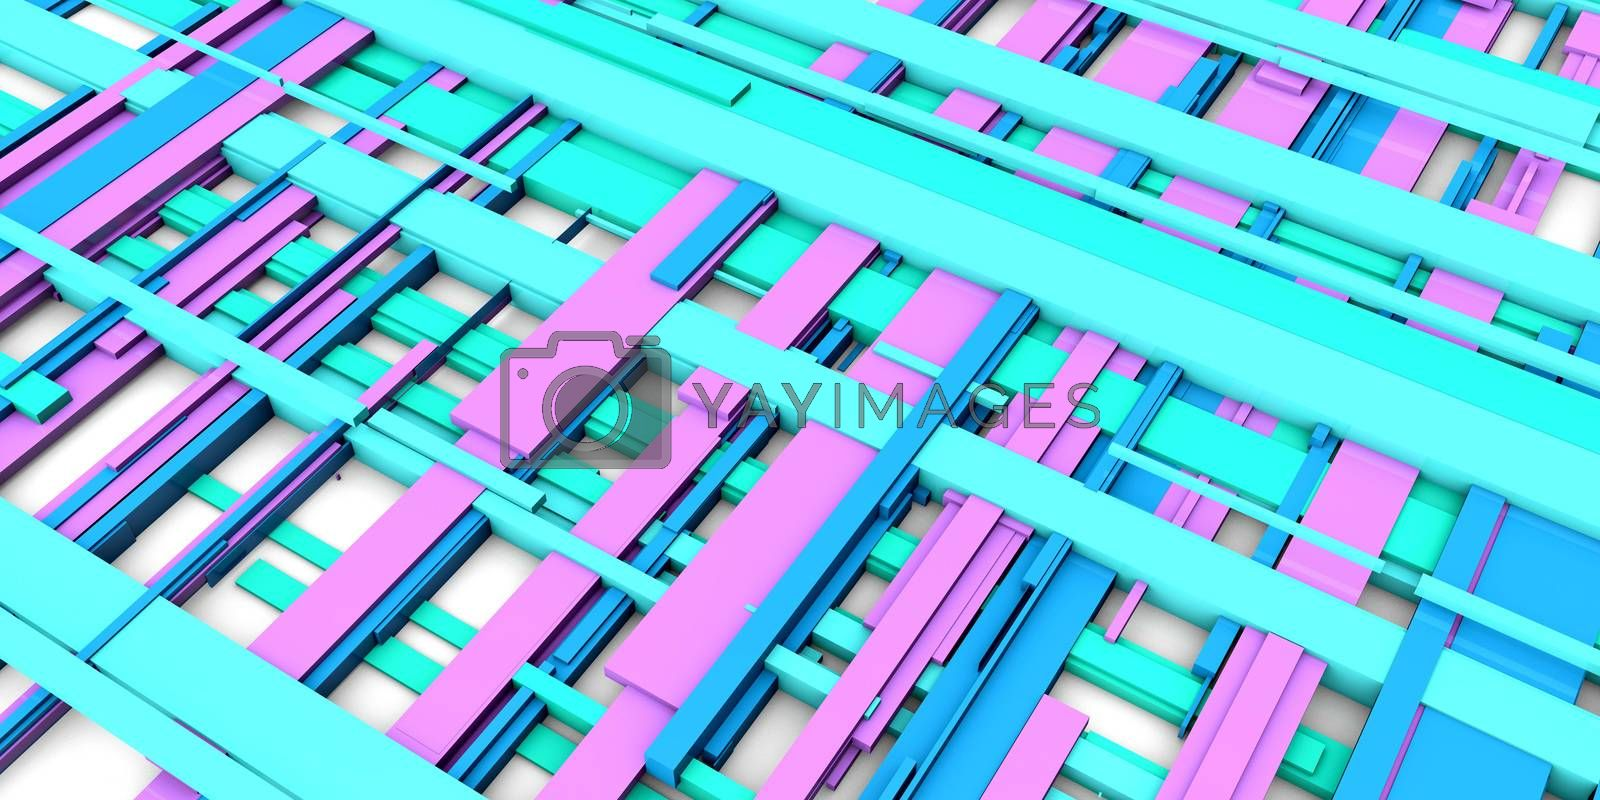 Beauty Fashion Geometric Background in Blue Pink and White